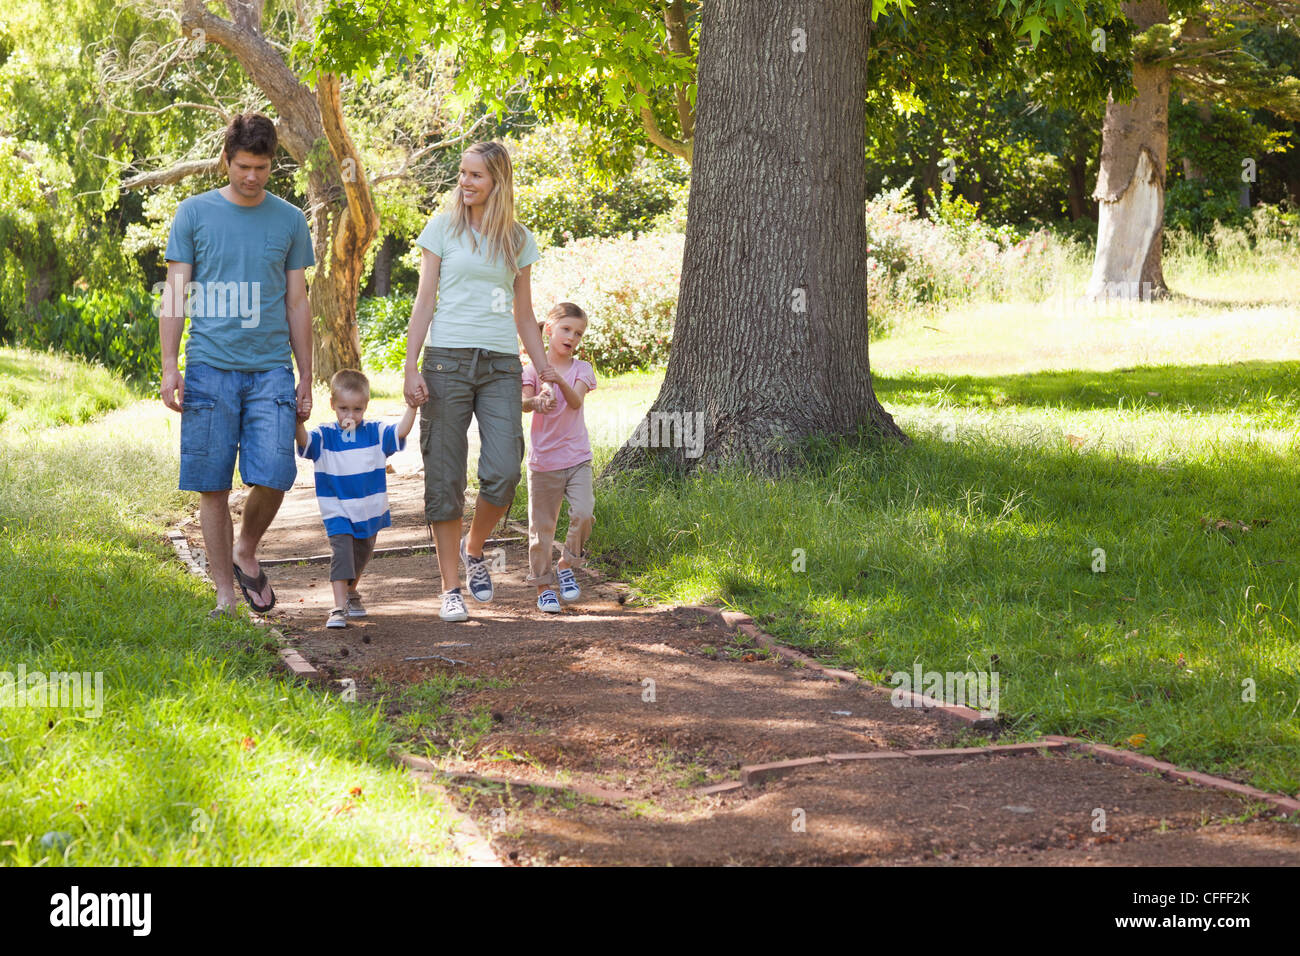 A family walking towrds the camera getting closer - Stock Image